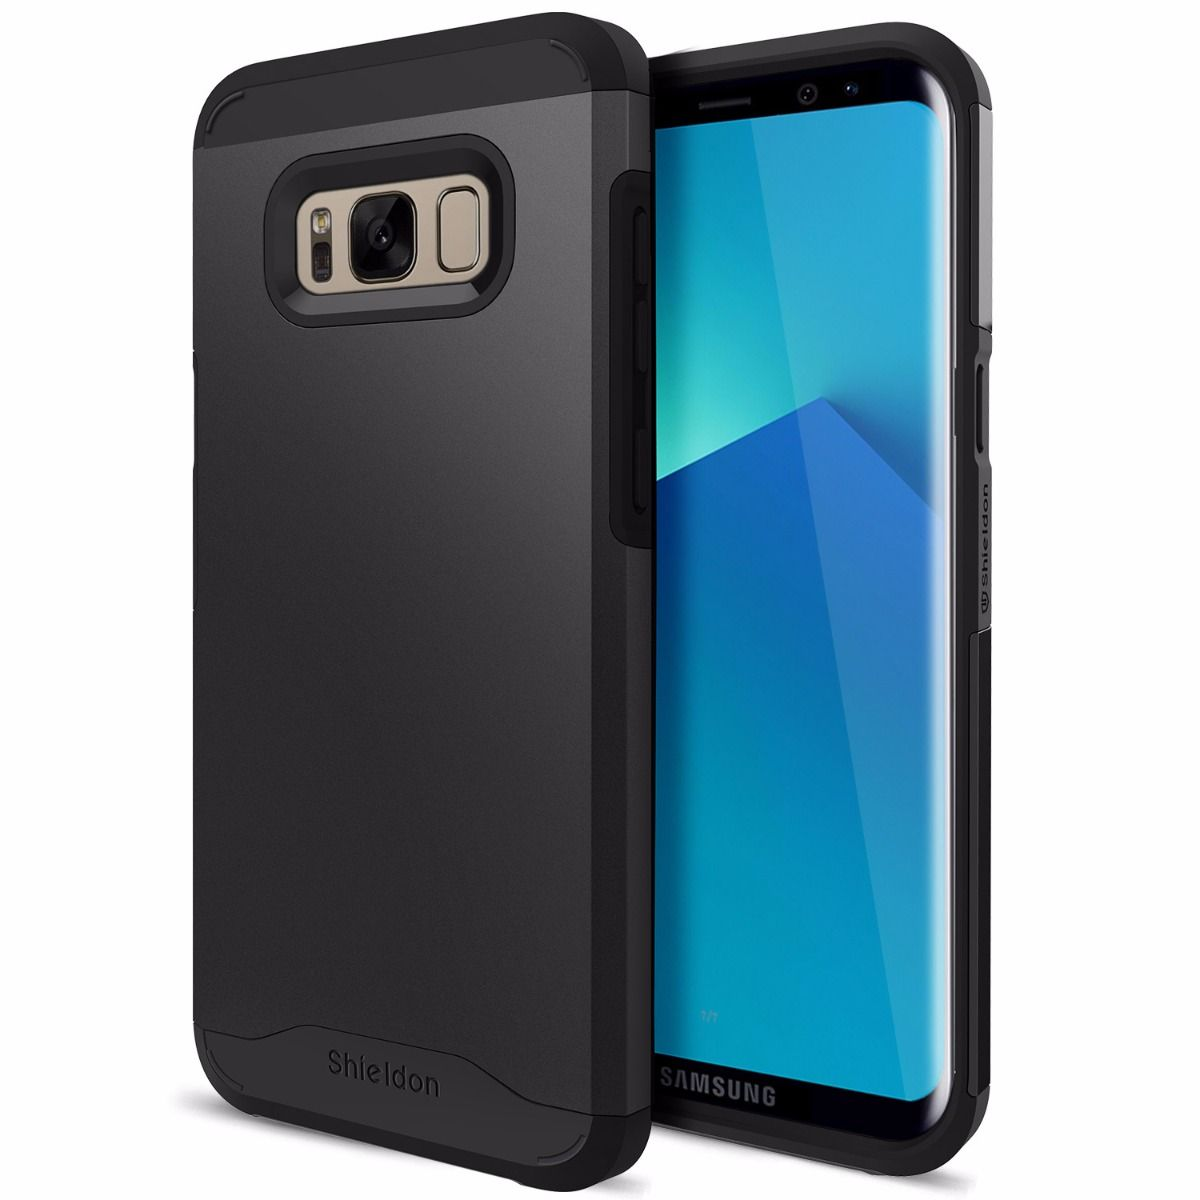 low priced 6efa4 9f294 SHIELDON Galaxy S8 Plus Drop Protection Case Mountain Series - Galaxy S8+  Protective Case